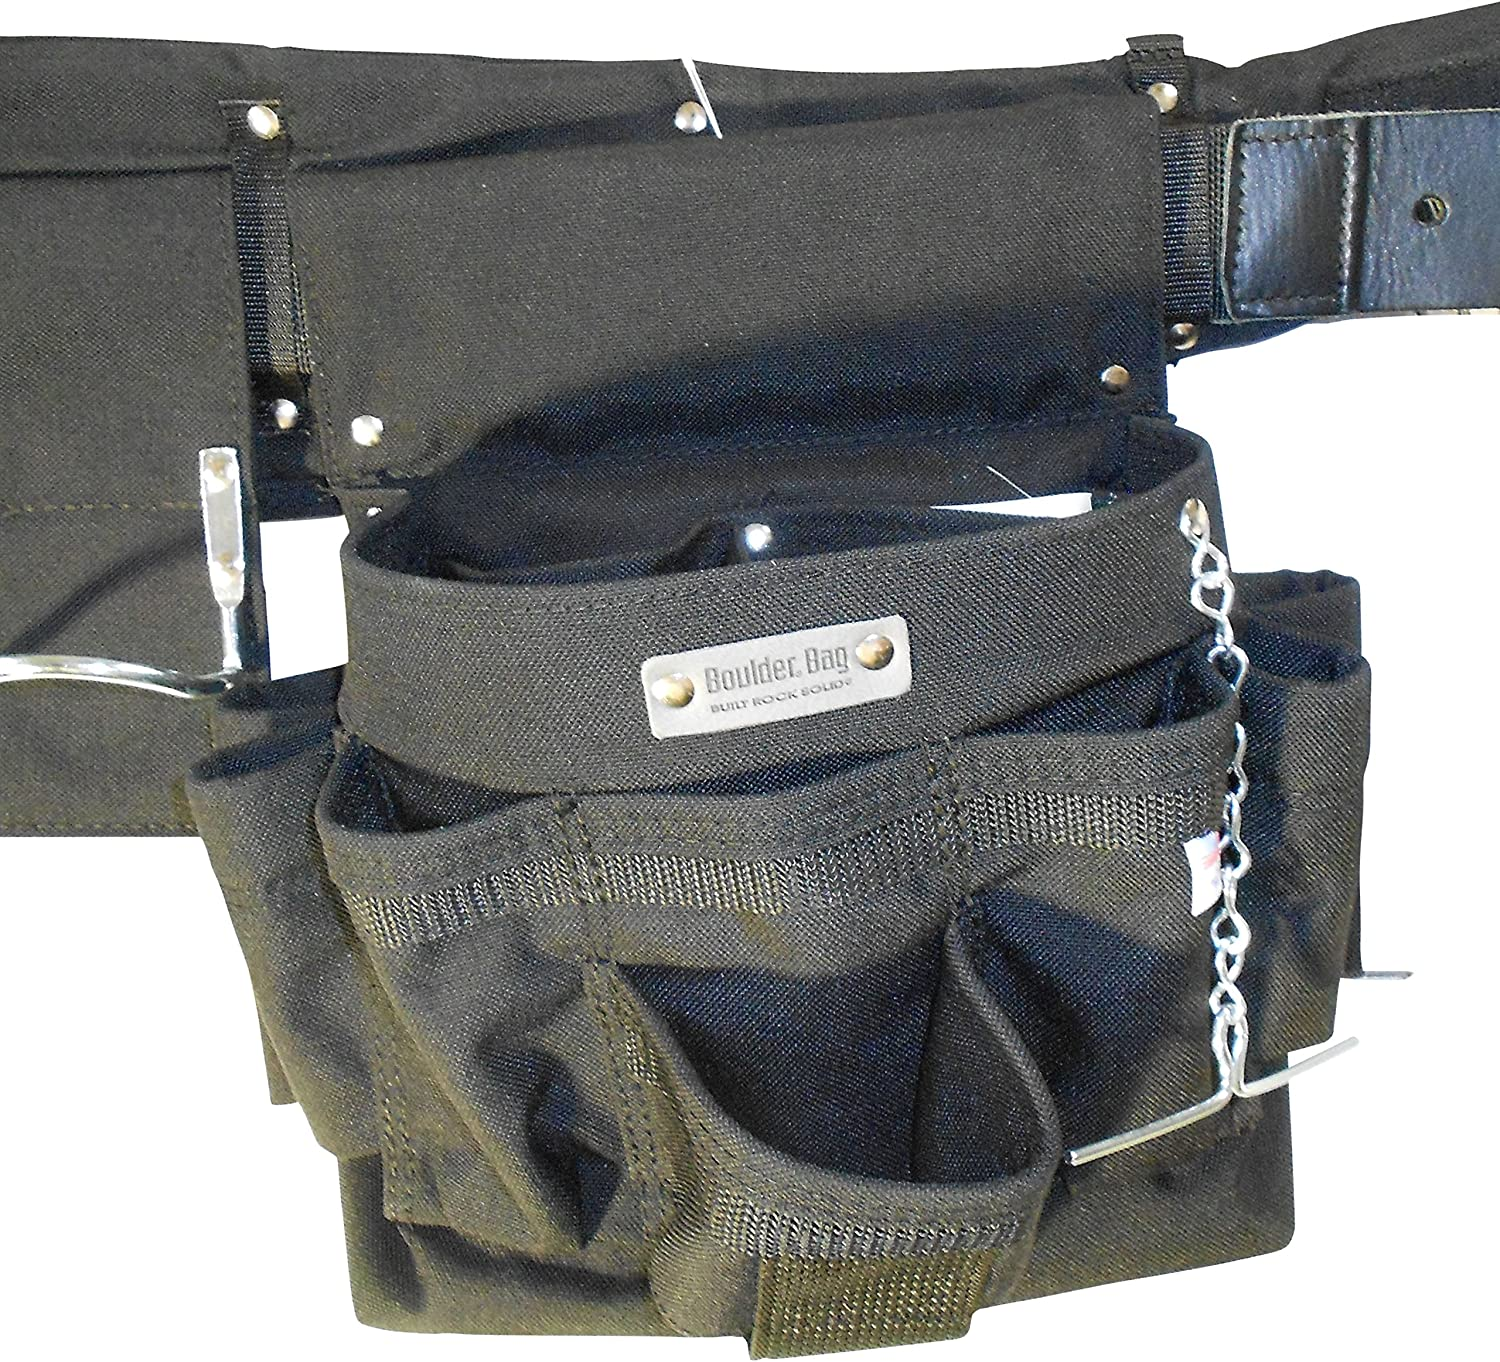 B001965QD0 Boulder Bag ULT104BKLG Ultimate Electrician Comfort Combo with Metal Buckle 81W1tSPhdfL